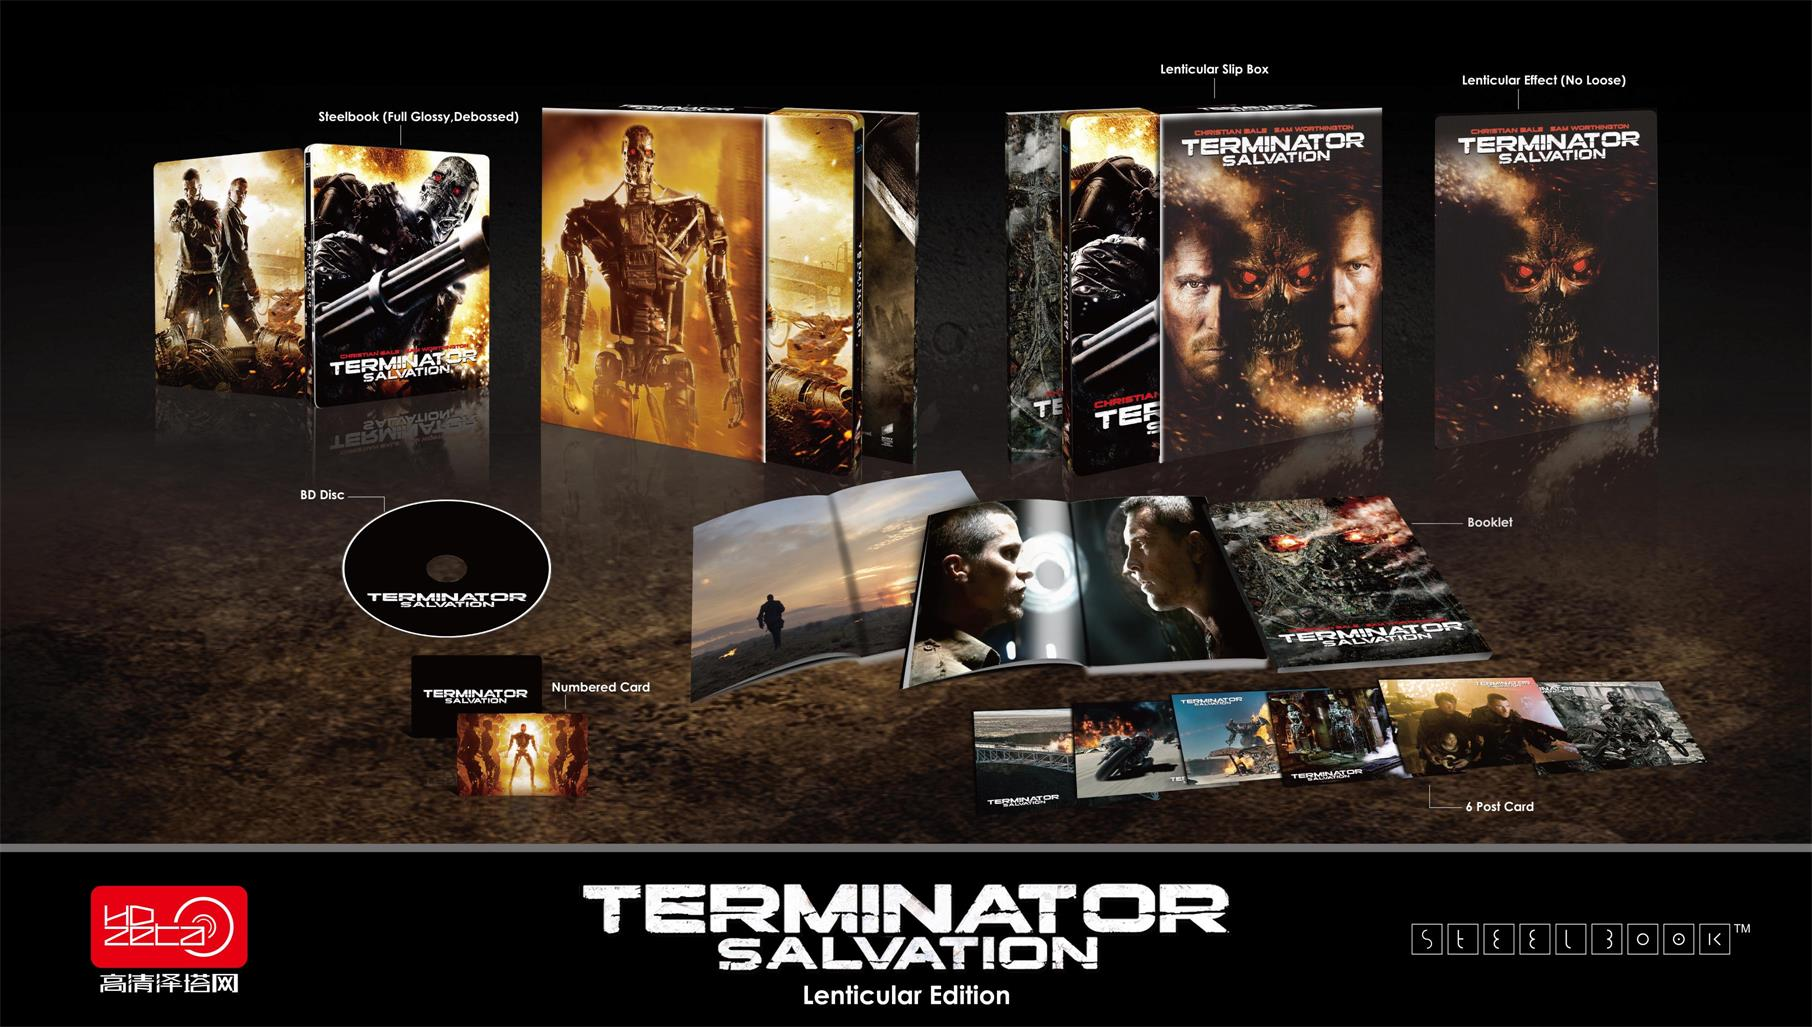 Terminator Salvation HDzeta Exclusive Lenticular Edition